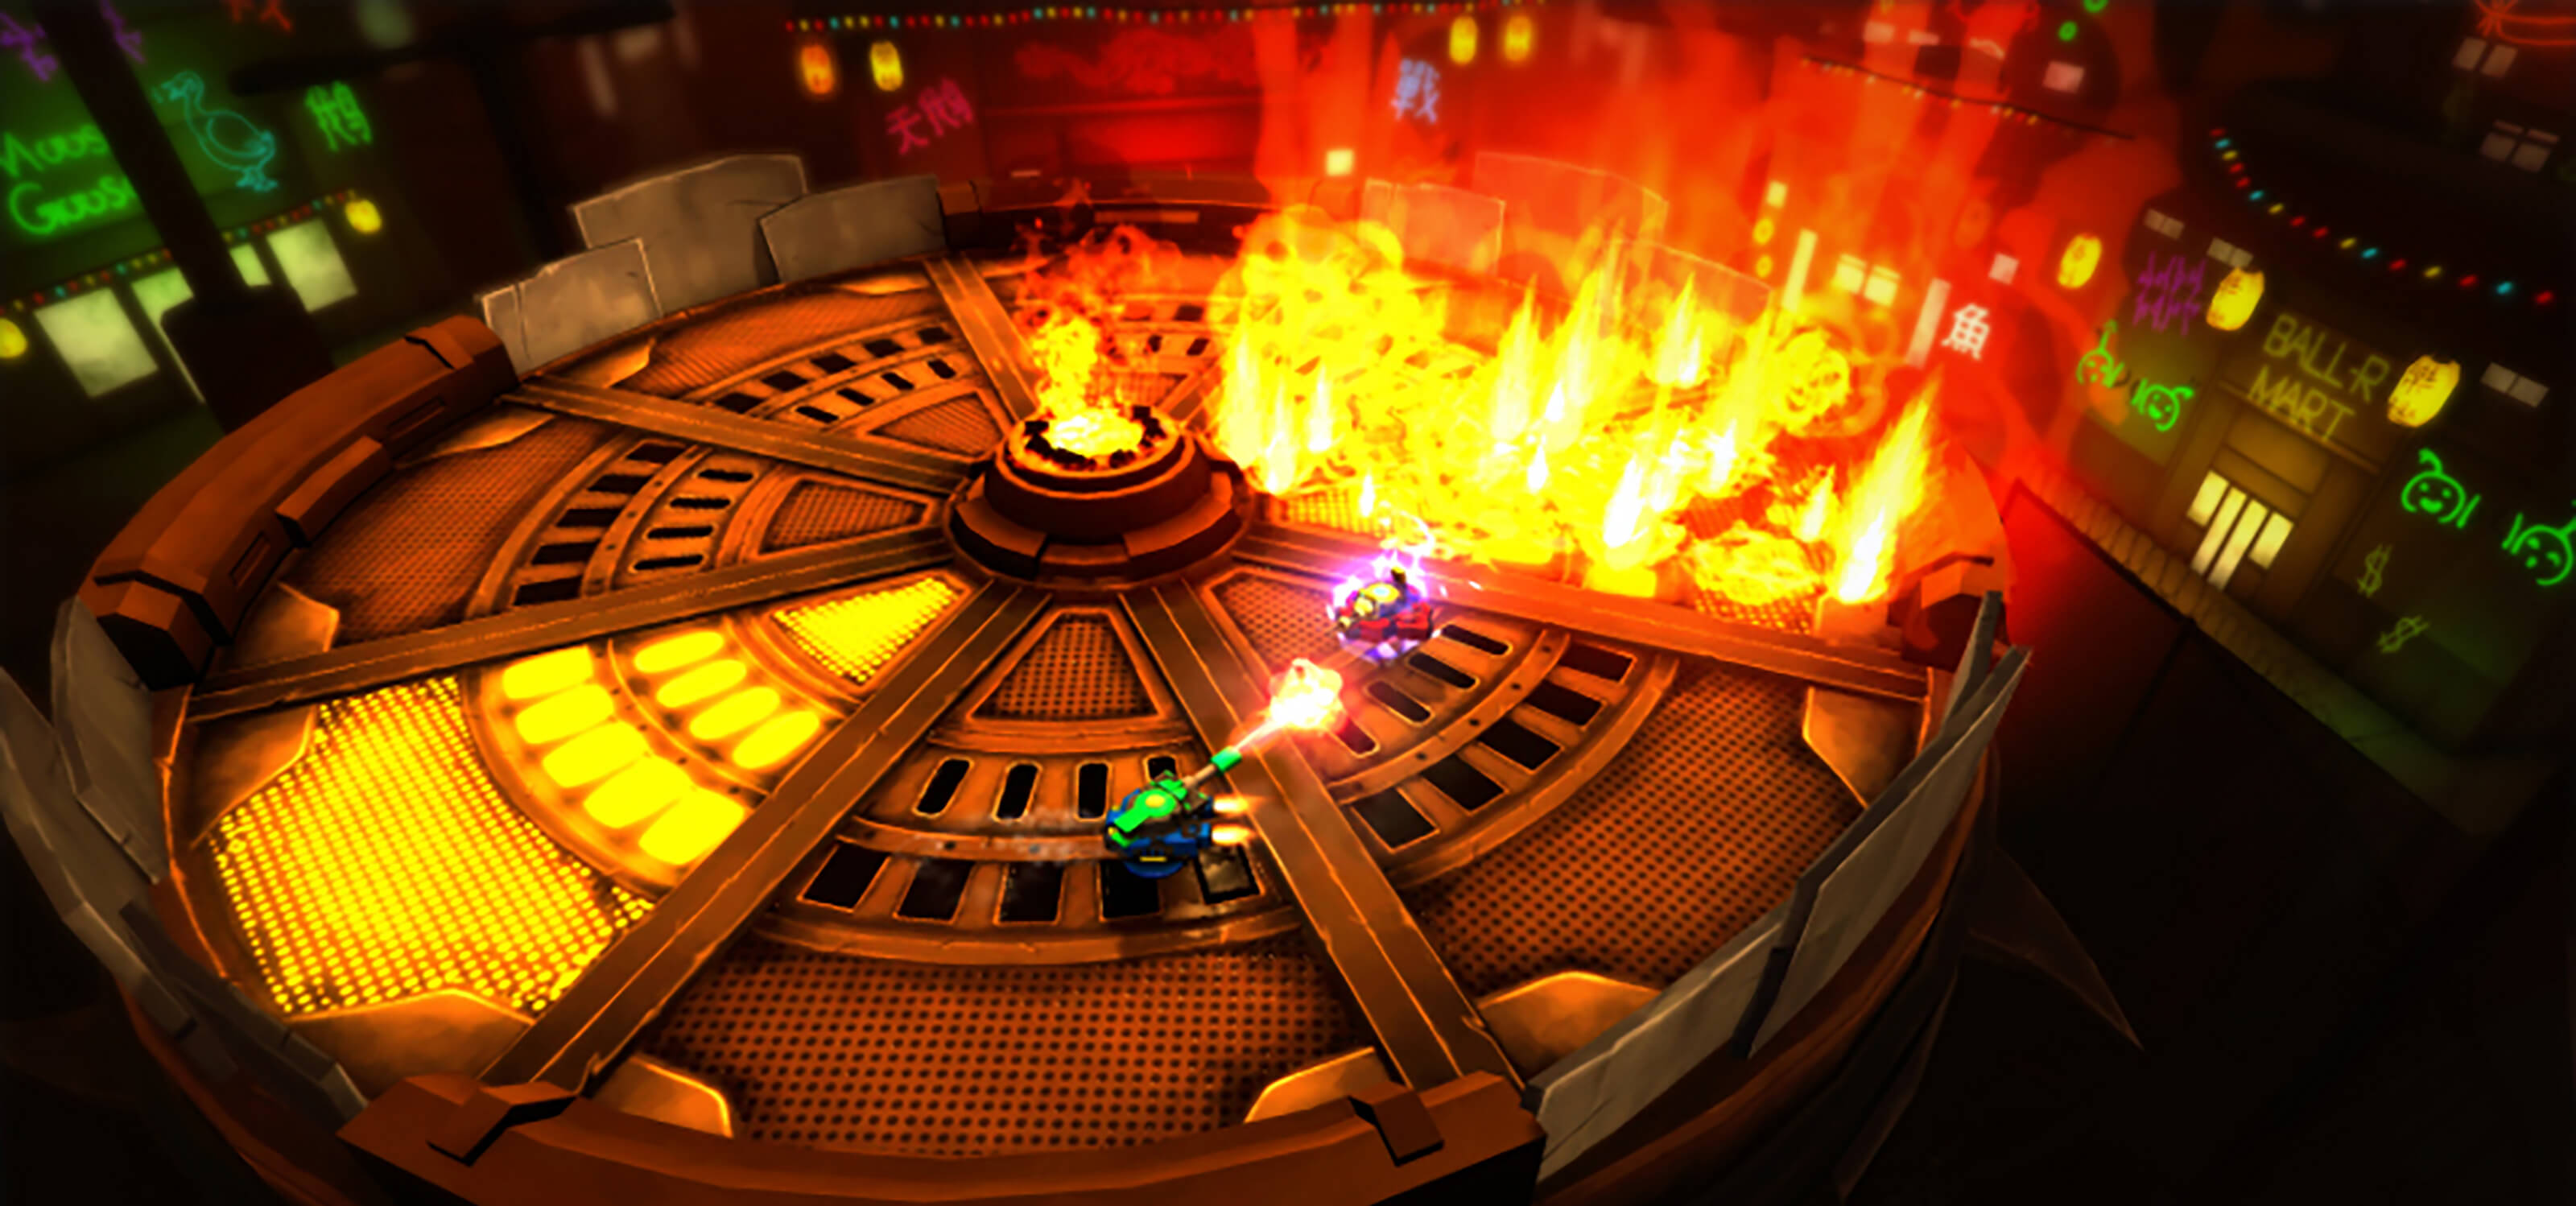 Screenshot of student game Wingman in which two hoverships battle in a circular arena where the floor is bursting in flames.